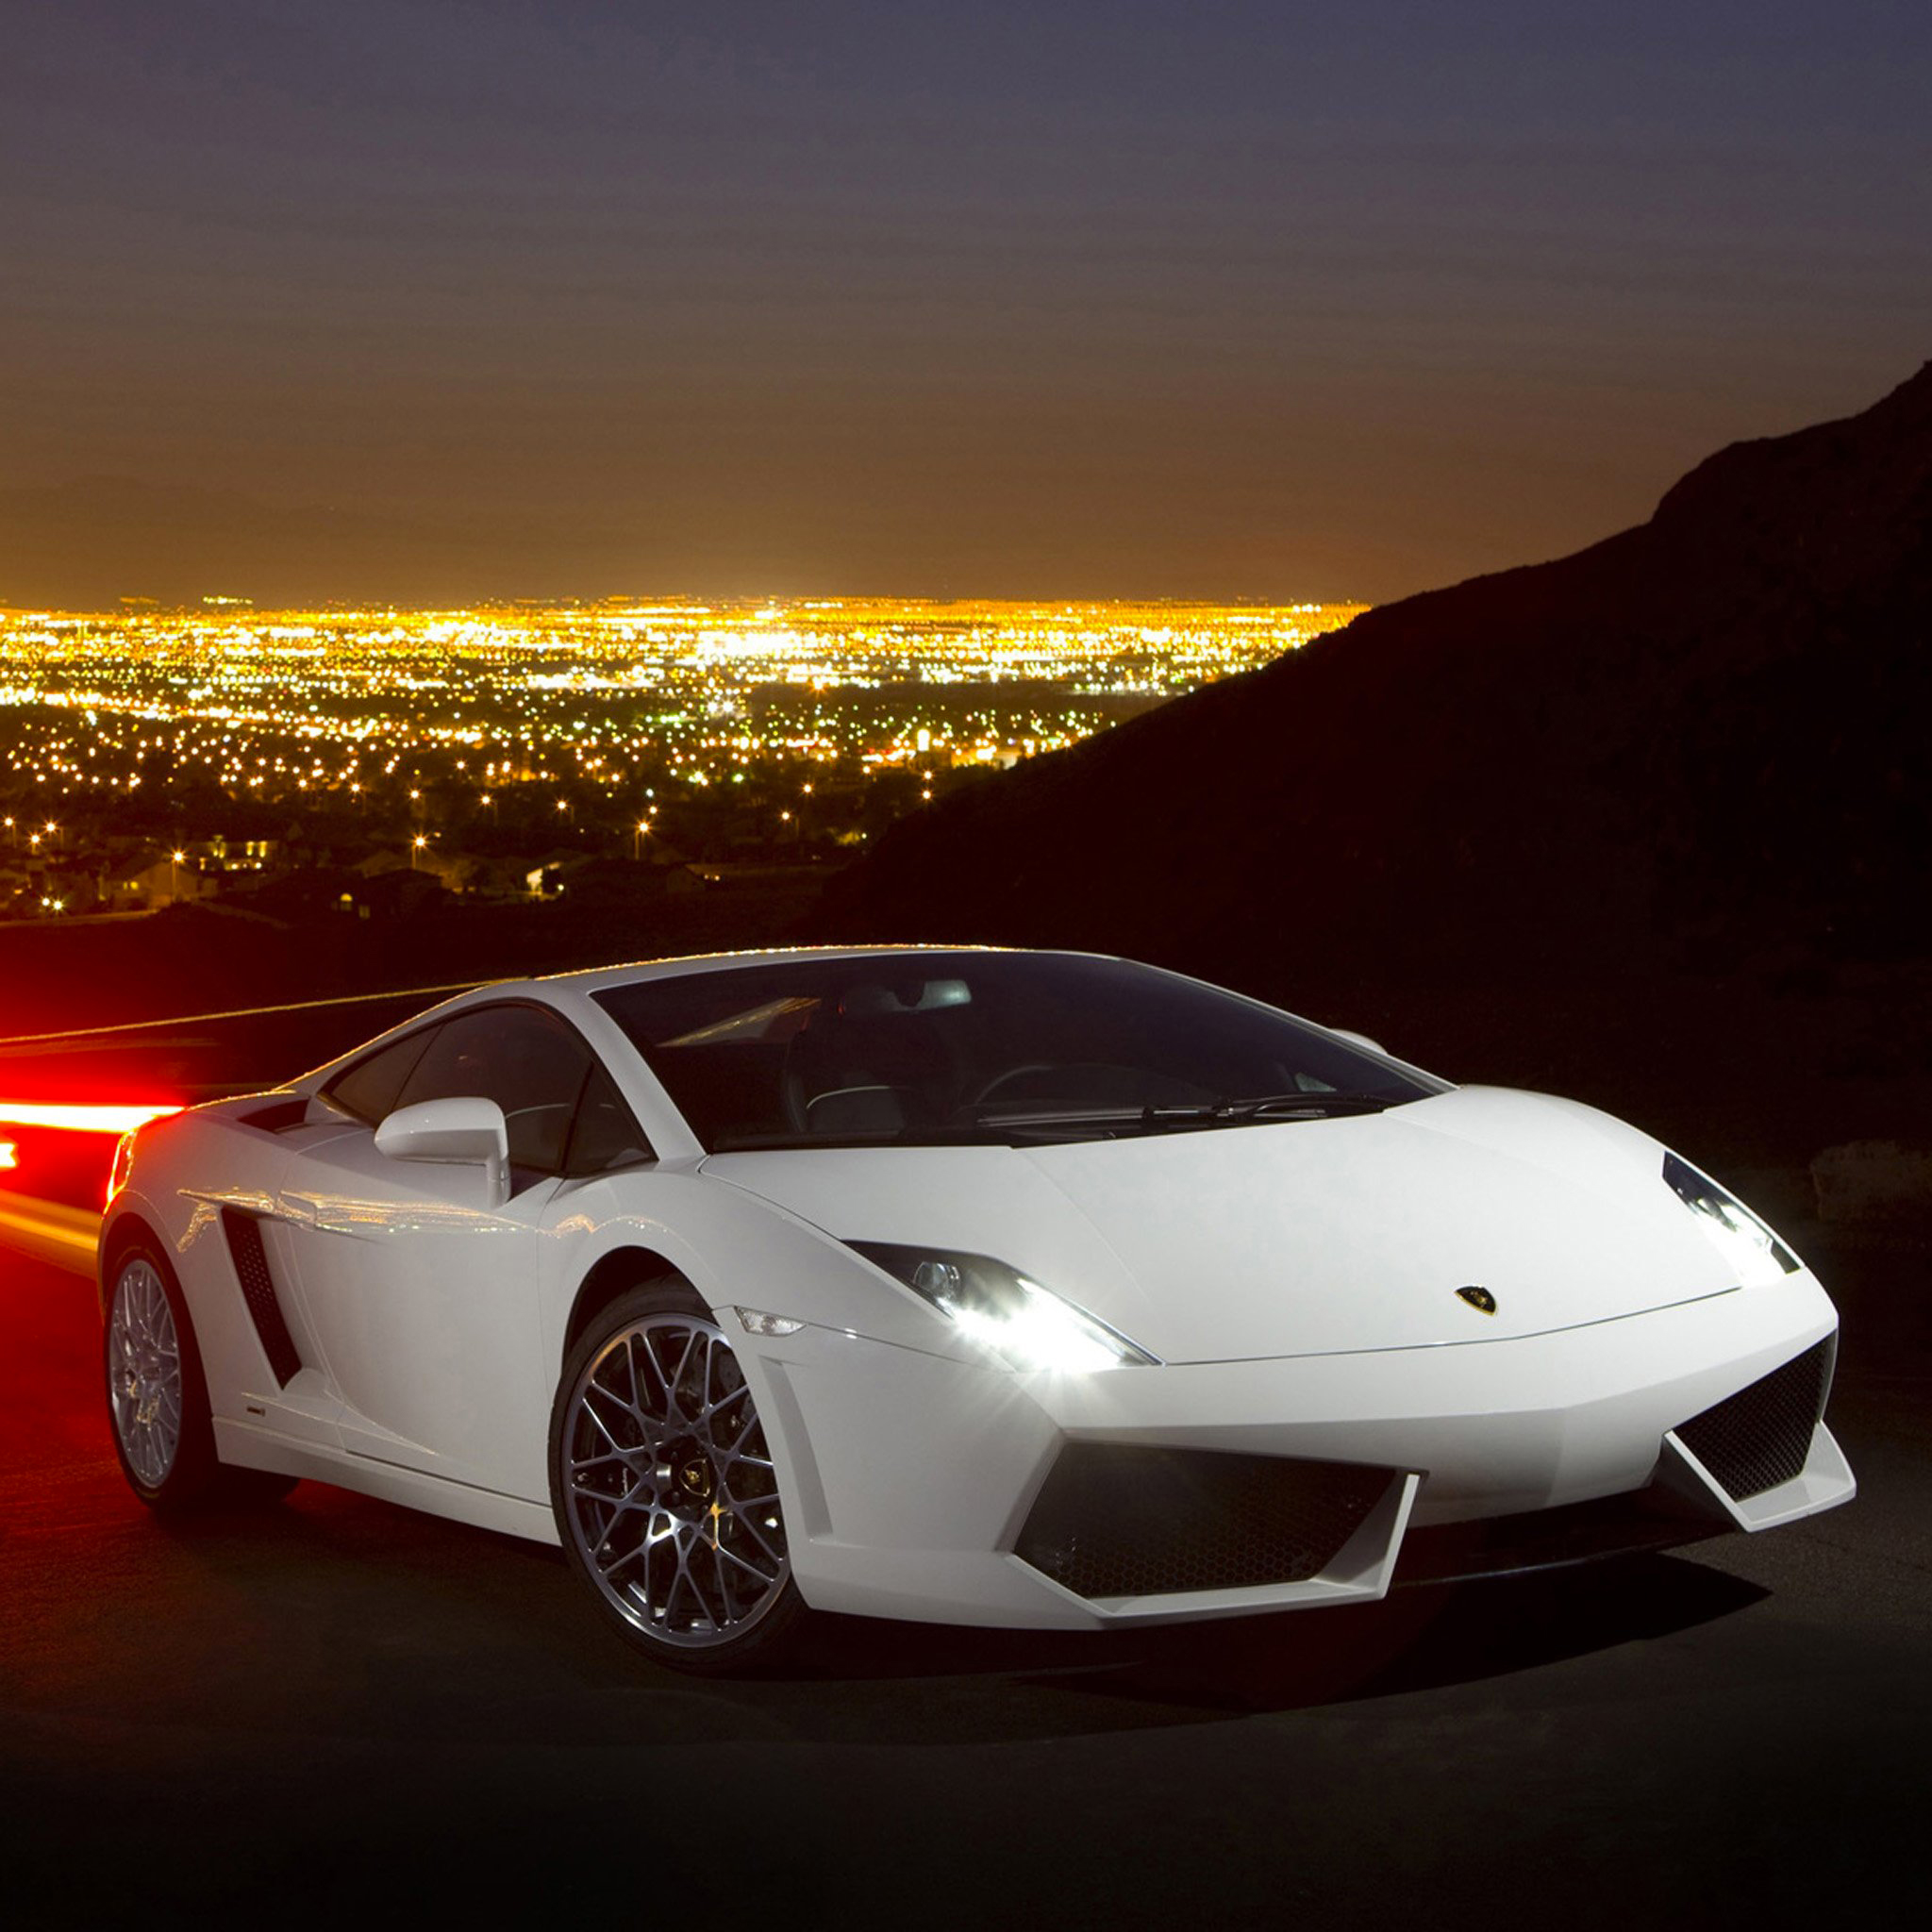 Lamborghini-Gallardo-Lp5603Wallpapers-iPad-Retina